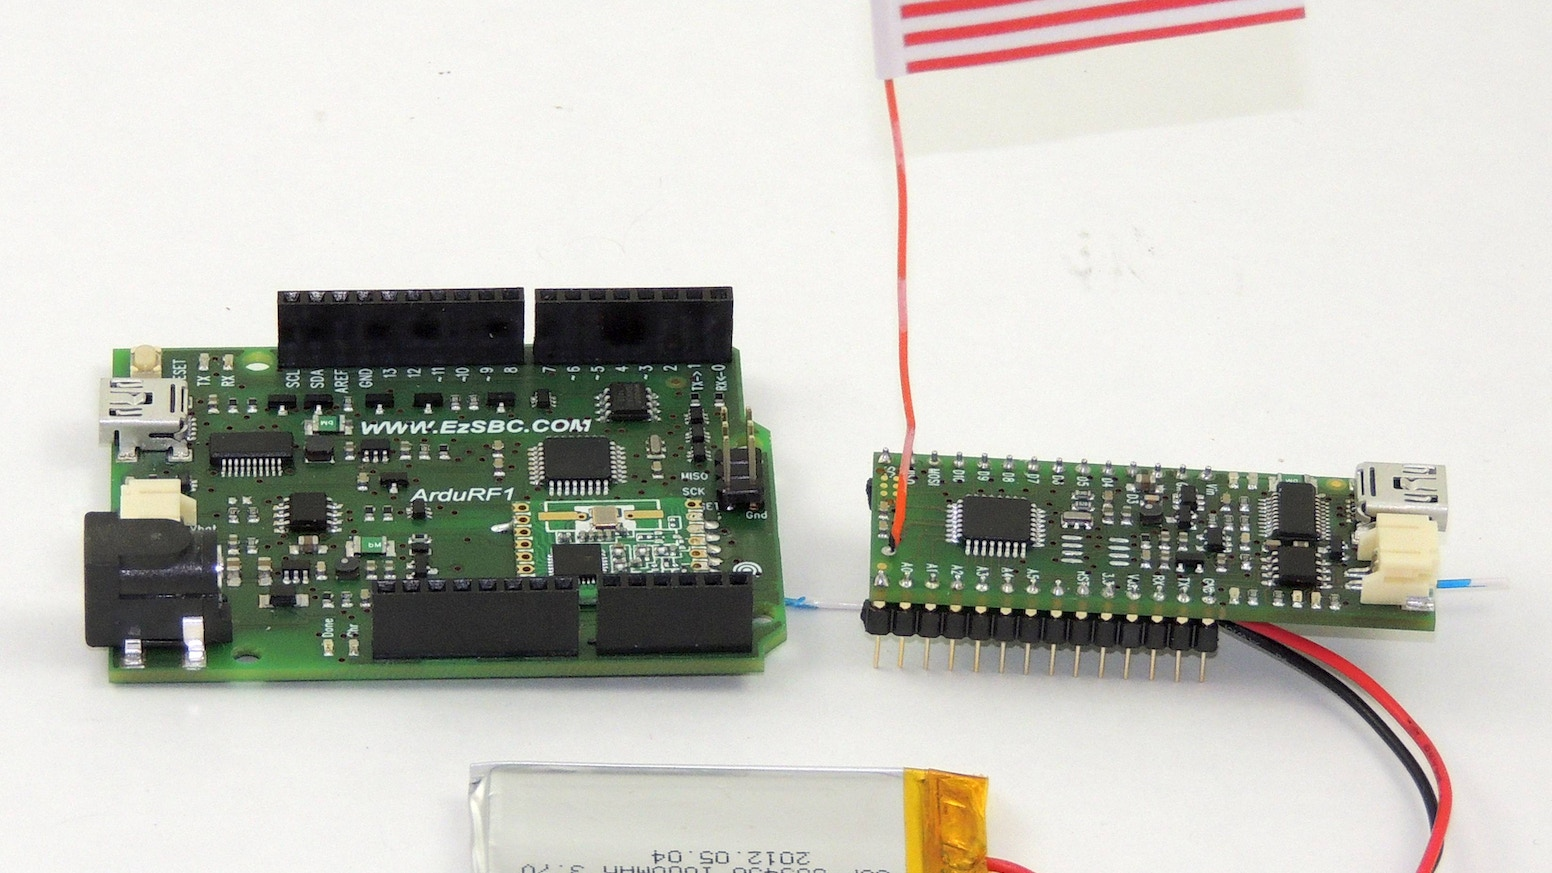 Ardurf Wireless Arduino Done Right By Daniel Debeer Kickstarter Fm Transmitter Circuit 6 Electronic Breadboard Layout Takes The Pain Out Of Links For Platform Atmega328 And A Hoperf Rfm69 Radio With Battery Charging Onboard